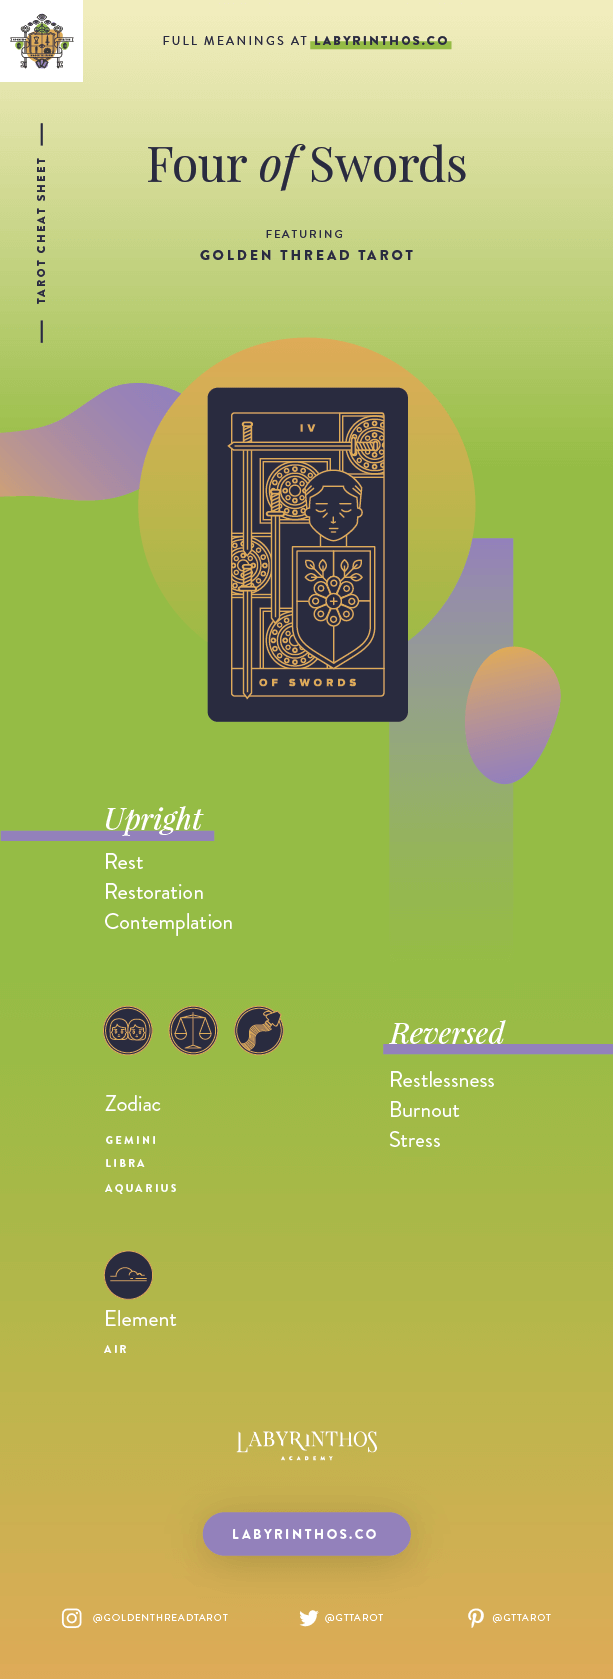 Four of Swords Meaning - Tarot Card Meanings Cheat Sheet. Art from Golden Thread Tarot.